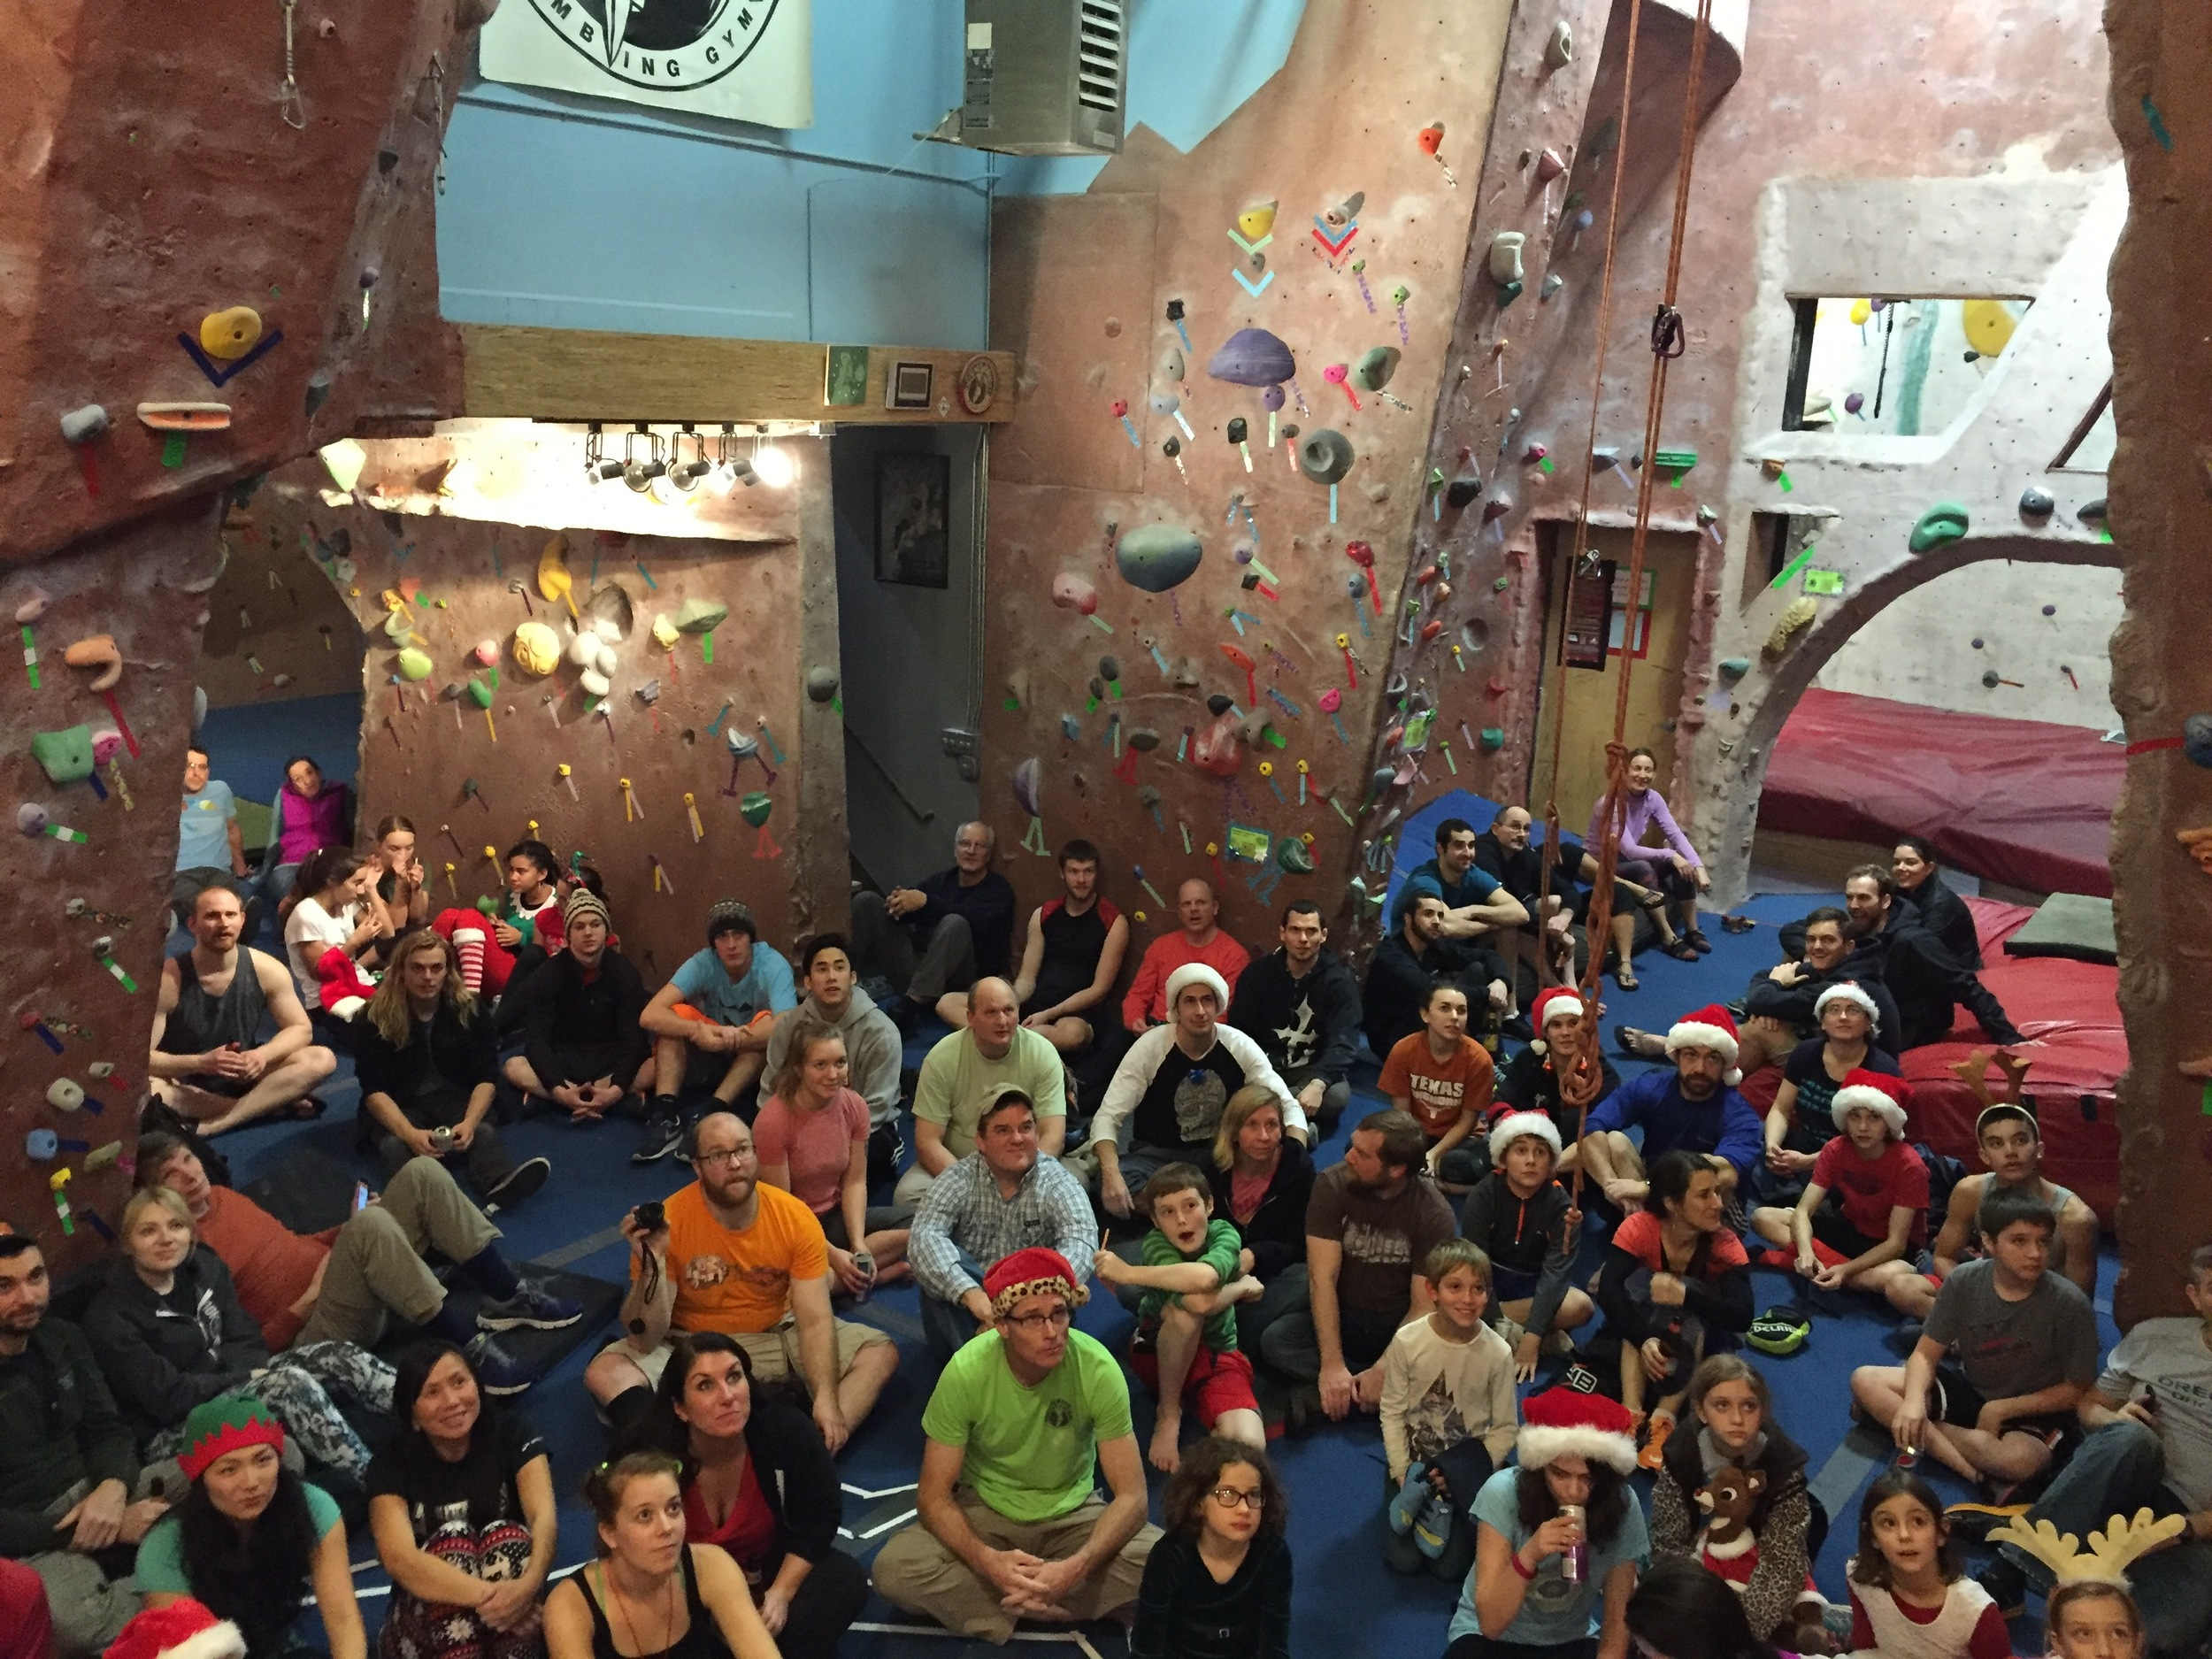 A big percentage of the SW/AG family during Christmas Boulder Joust at Stoneworks.